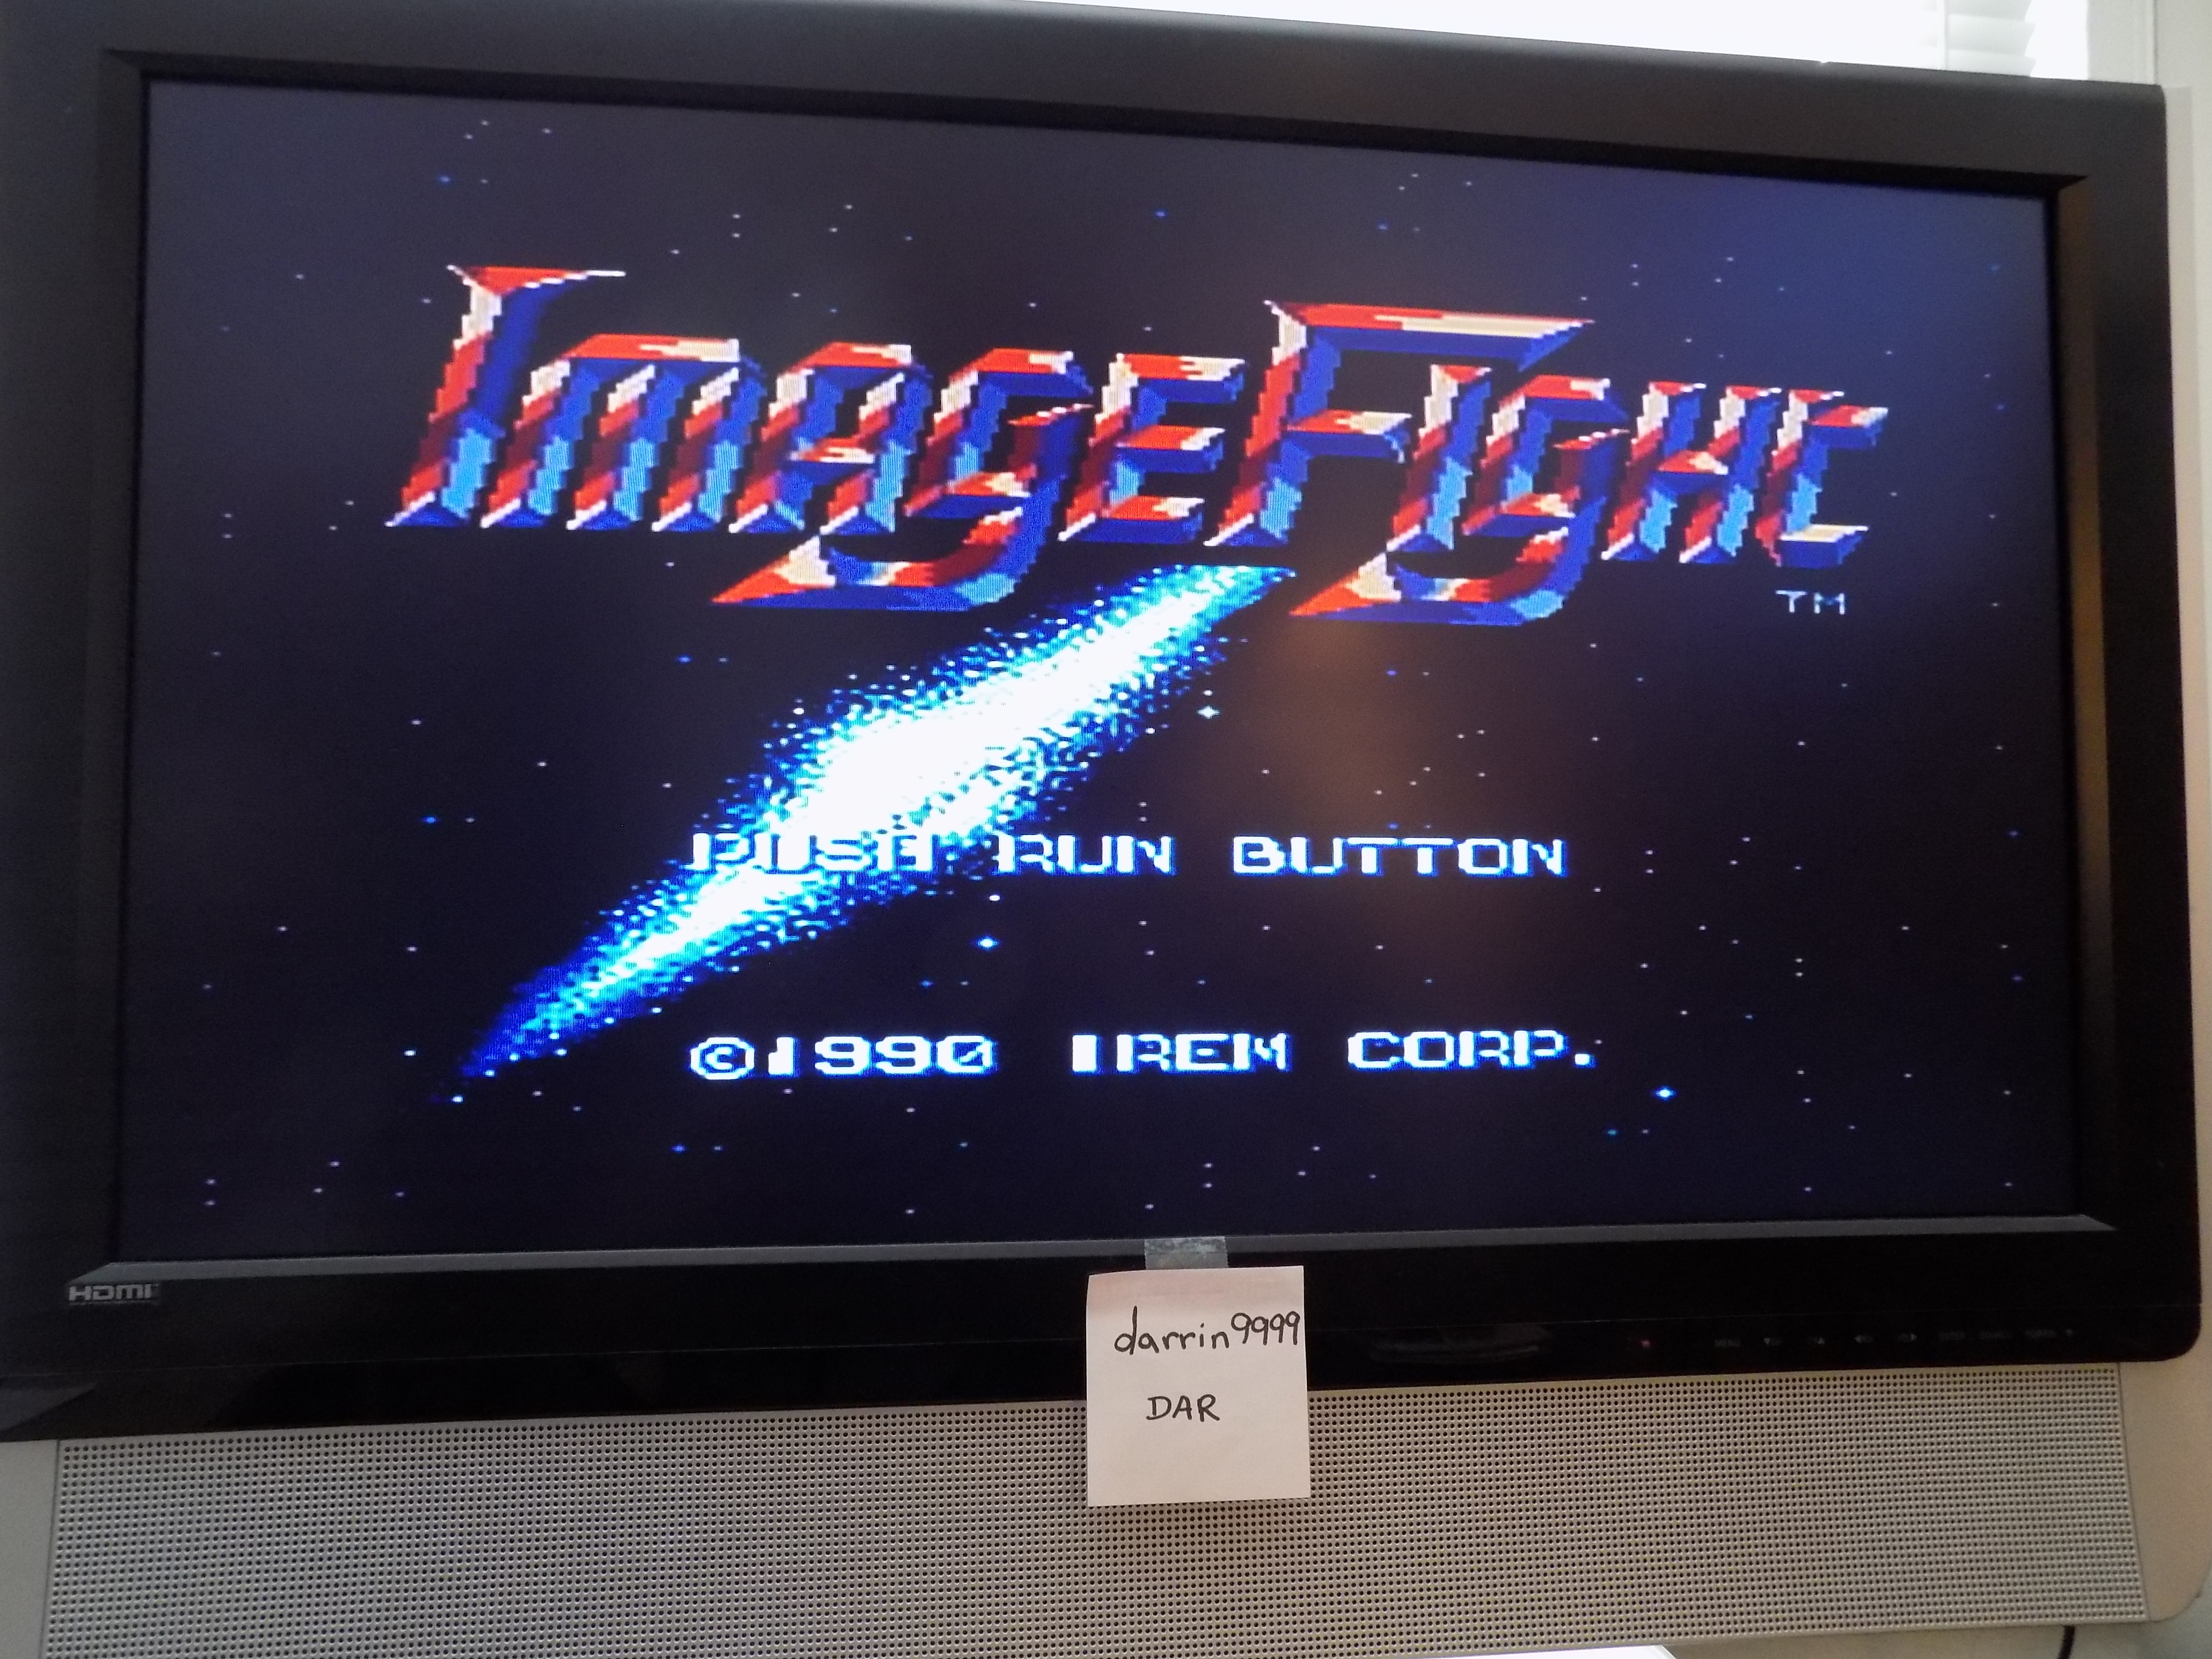 darrin9999: Image Fight (TurboGrafx-16/PC Engine) 43,300 points on 2017-06-16 14:28:09